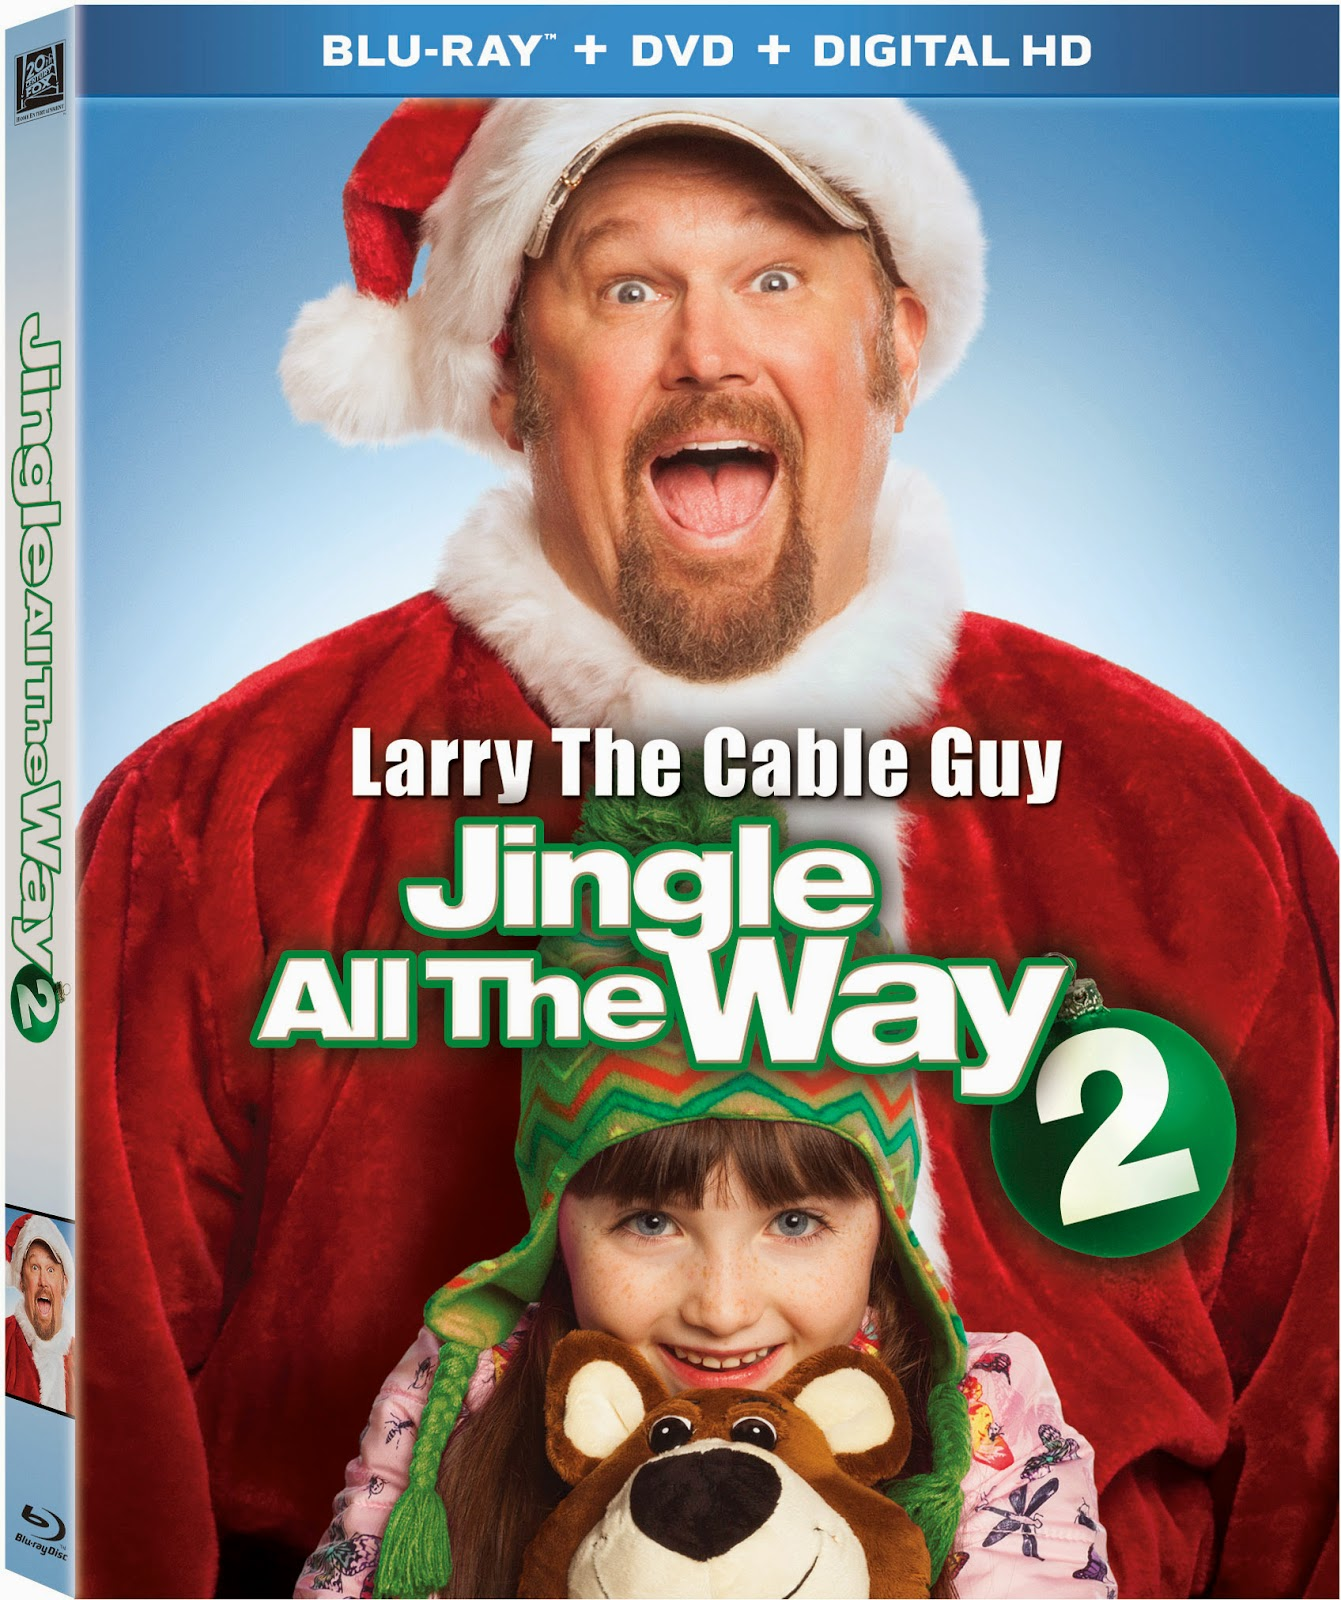 Jingle all the Way 2 Blu-ray